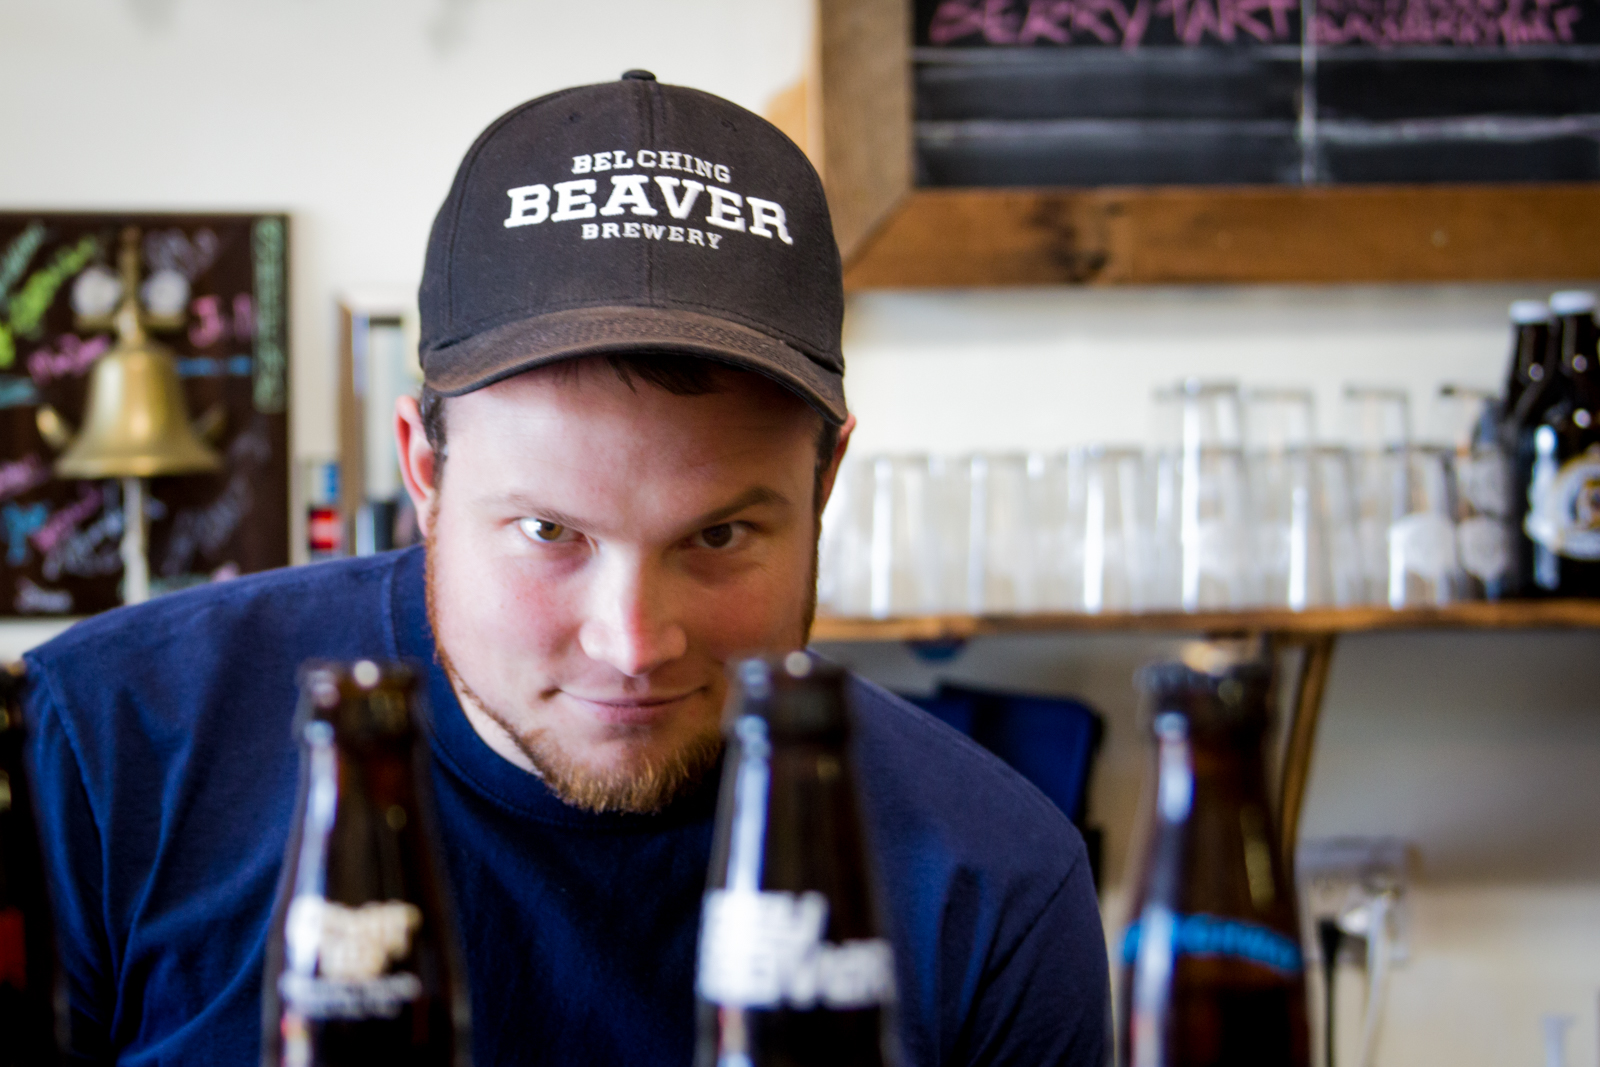 Sean Laidlaw, Brewer at Belching Beaver Brewery